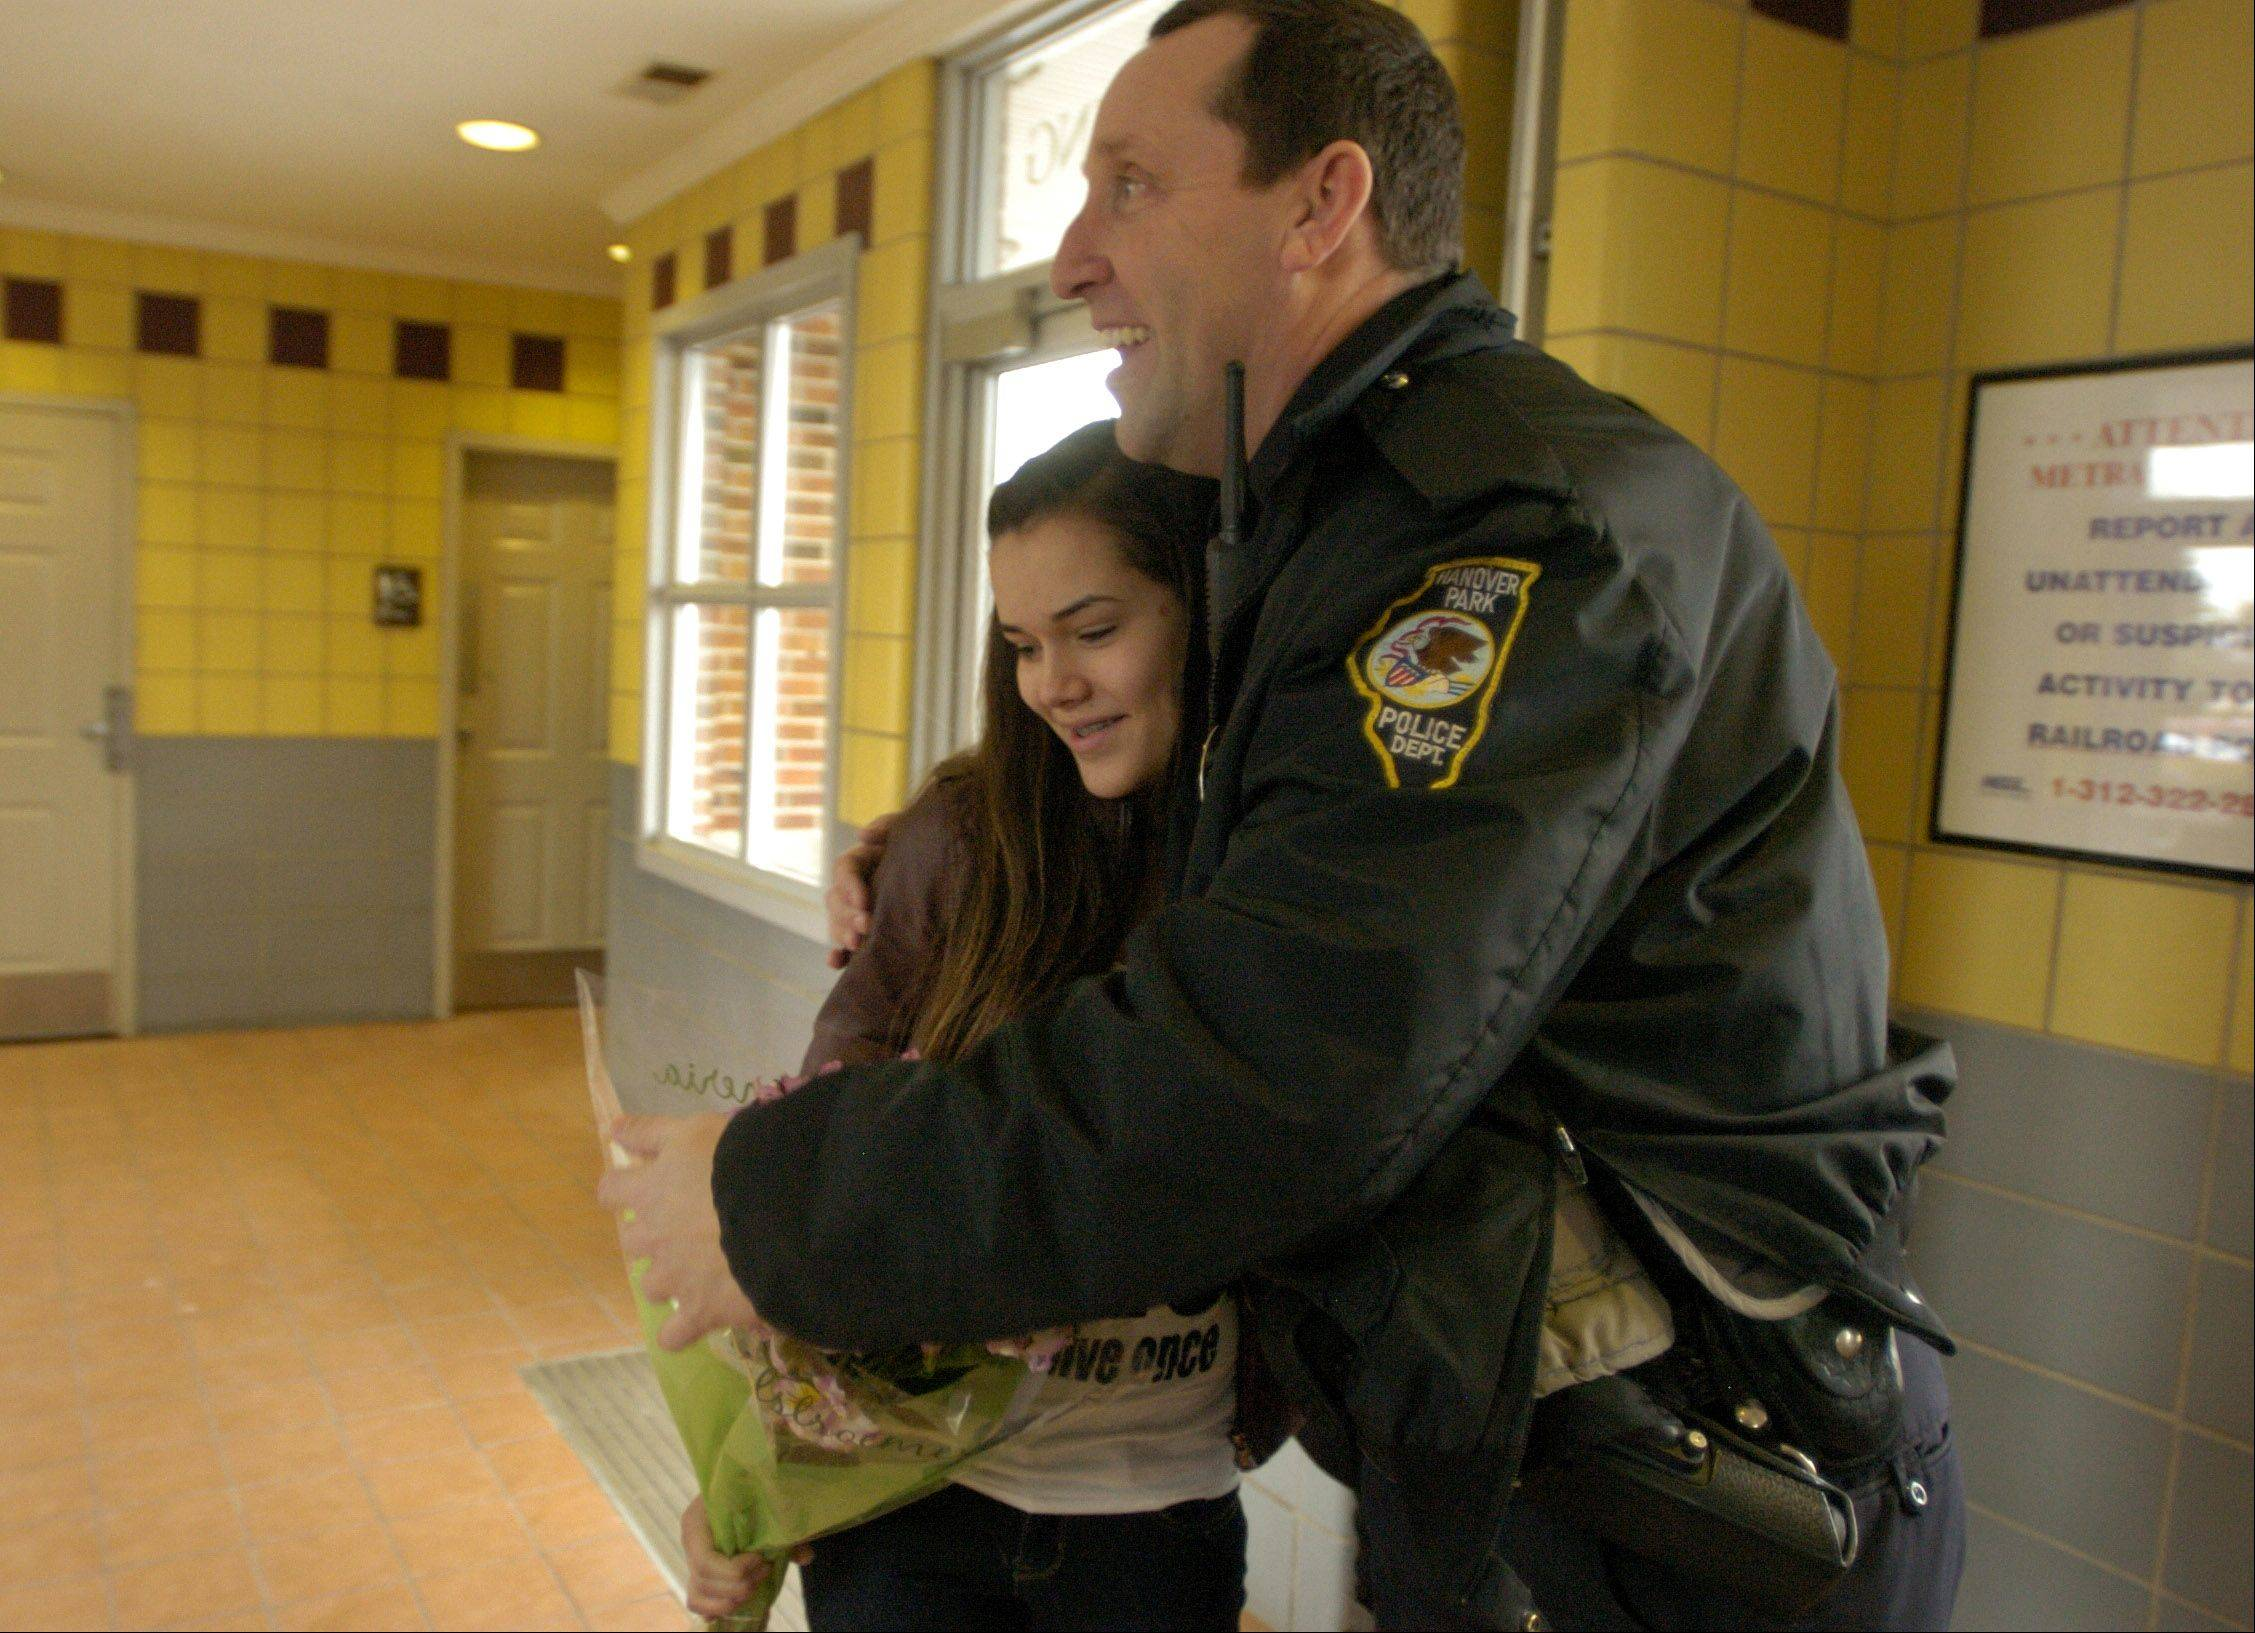 Hanover Park police Officer George Sullivan reunites with Brianna Elizondo, whom he helped deliver 13 years ago in the Hanover Park Metra station parking lot.